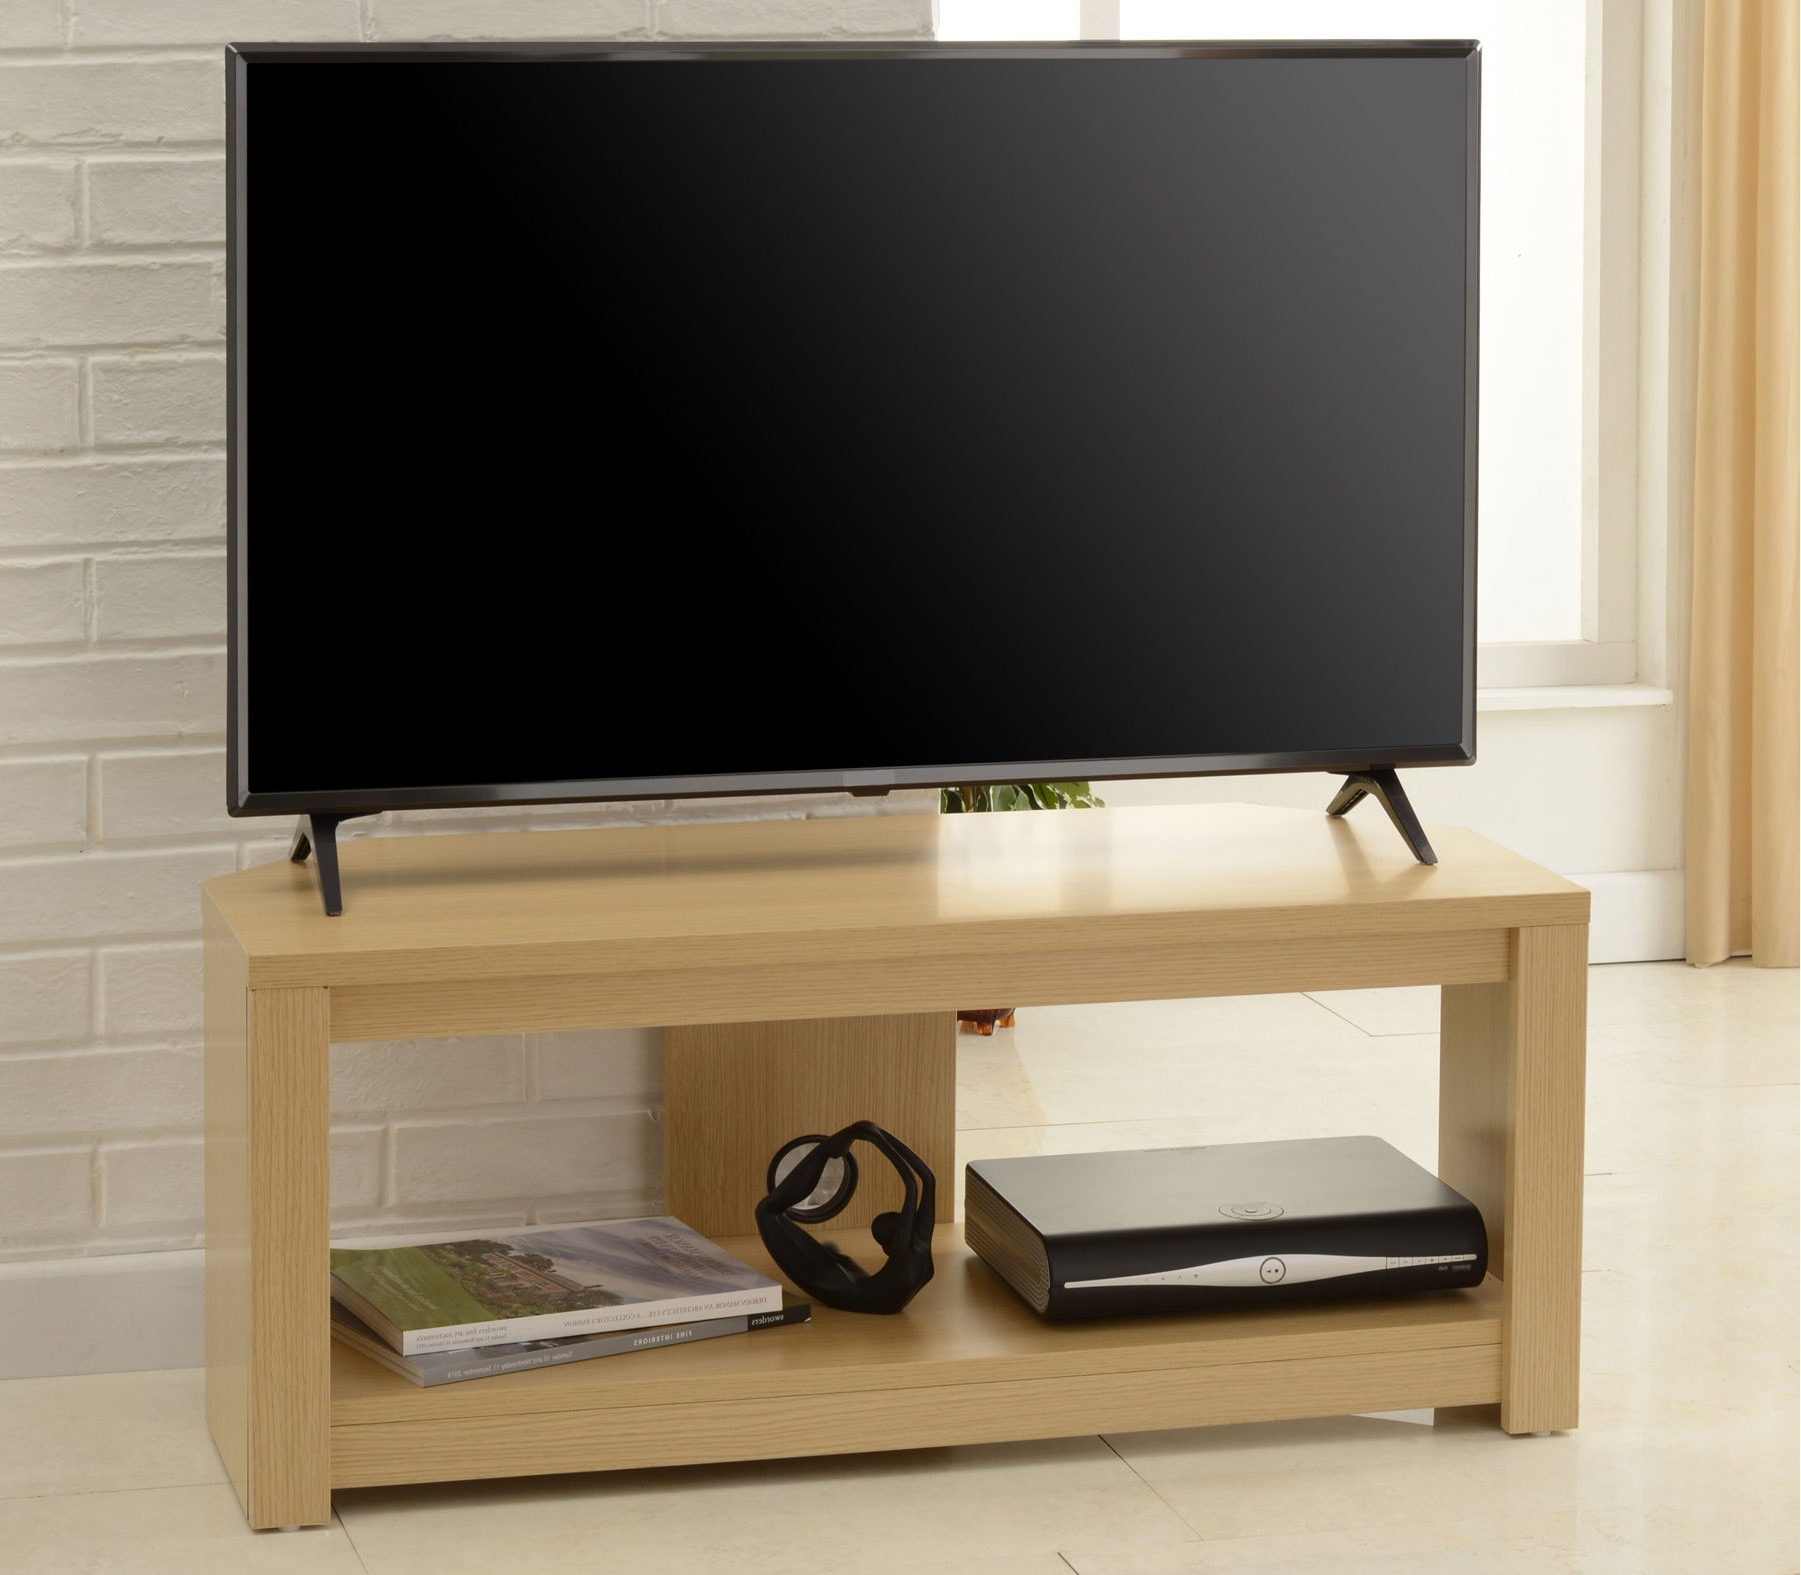 """Tnw Bos 1200 Oak Boston Corner Tv Stand In Oak – For 60"""" Tvs For Boston Tv Stands (View 5 of 20)"""